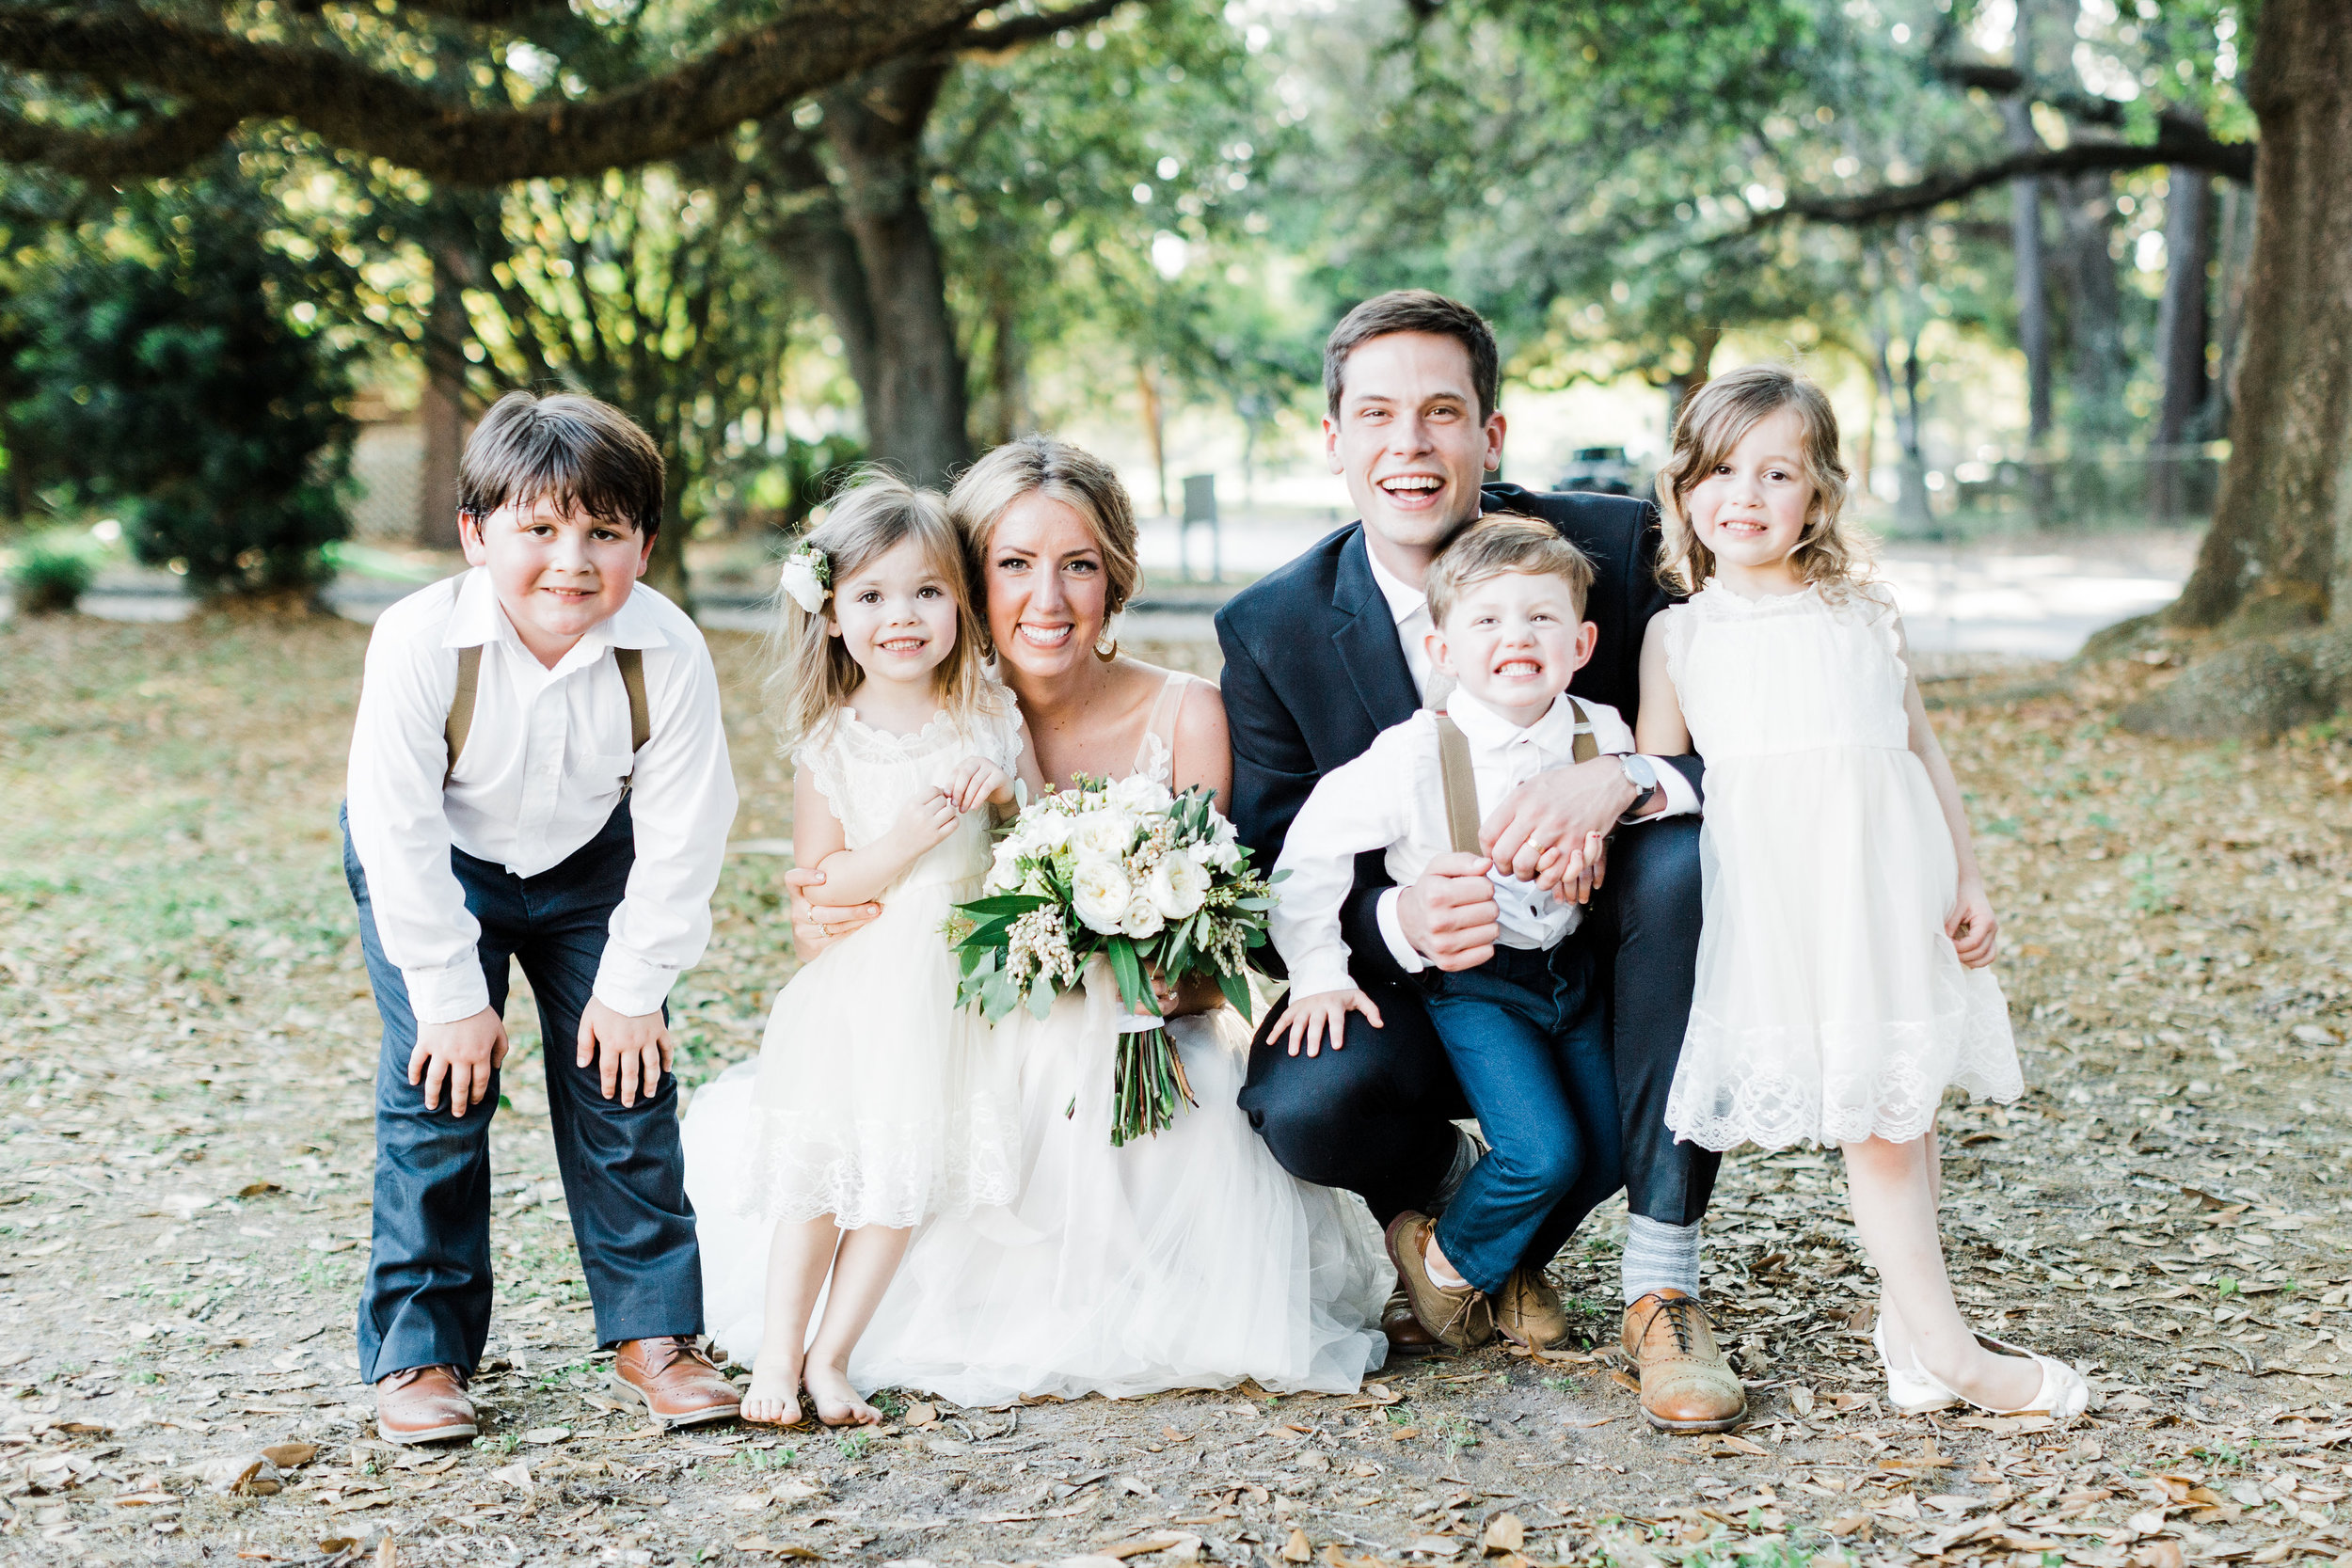 Southern Fete, Southern Wedding, Bride and Groom, Family Photo, Carolynn Seibert Photography